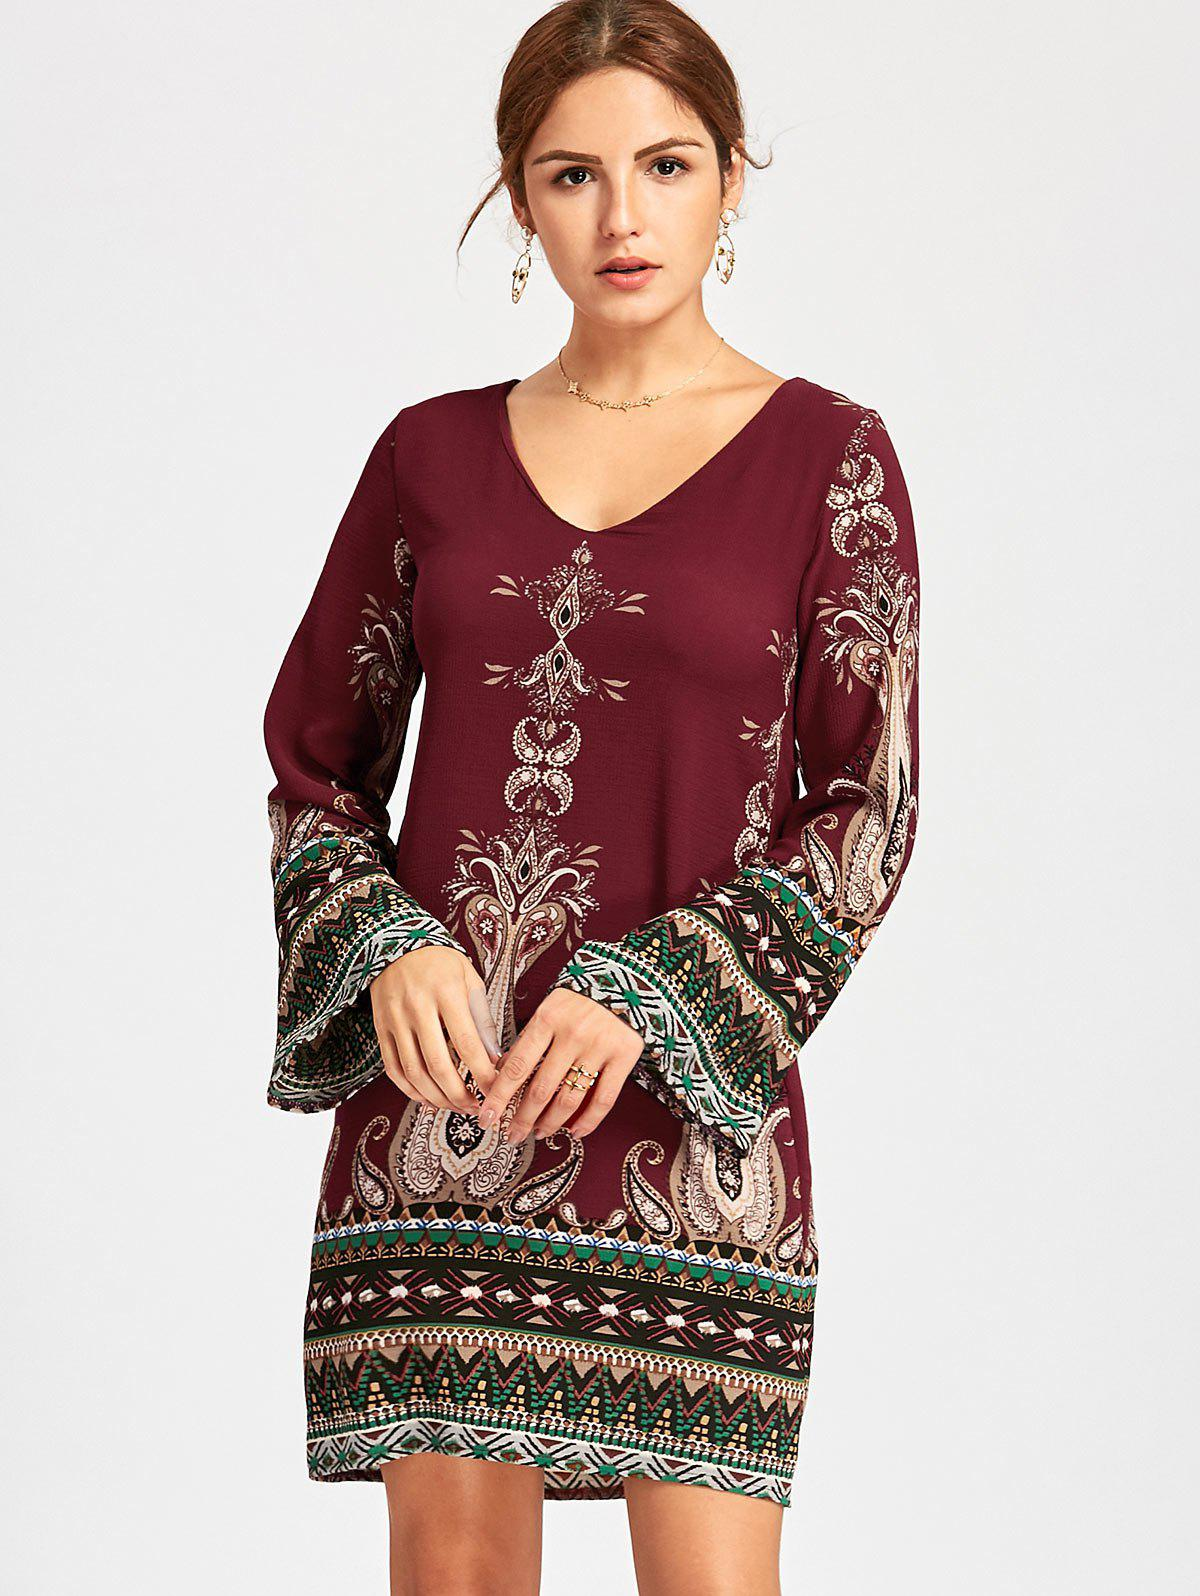 Bohemian Bell Sleeve Graphic Mini Dress - WINE RED M